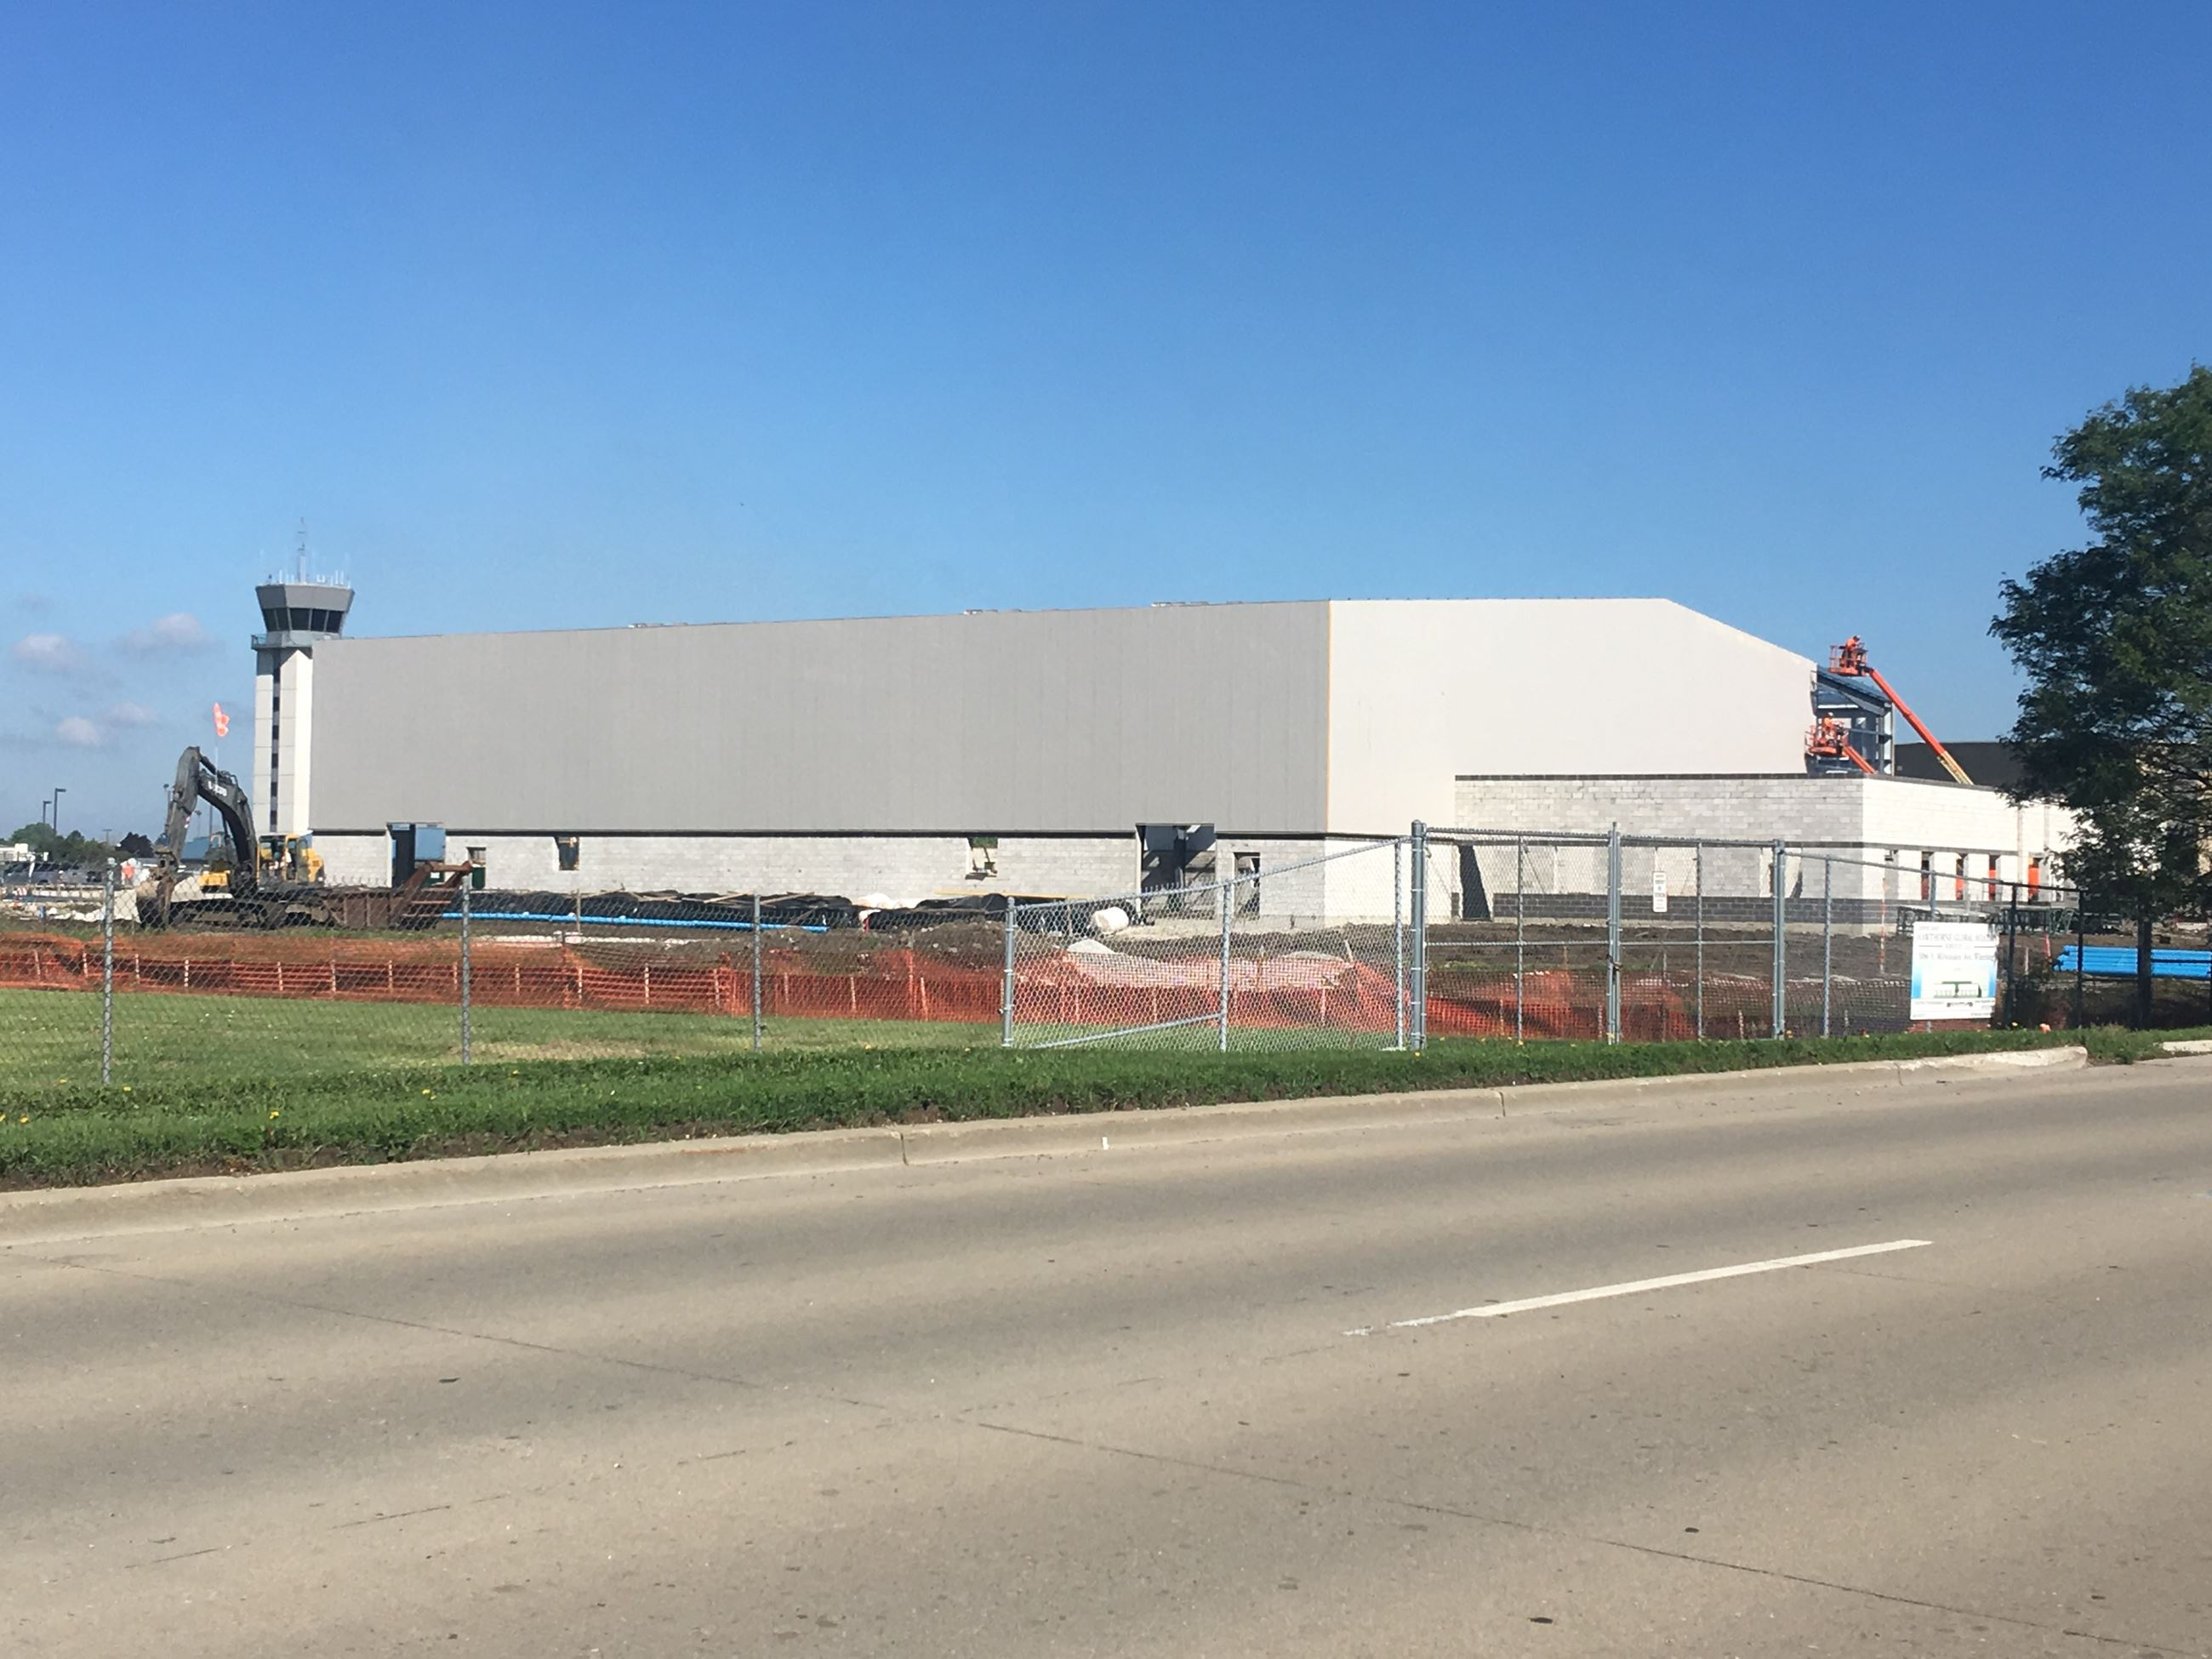 Hawthorne Aviation - Hangar Construction 6-28-18